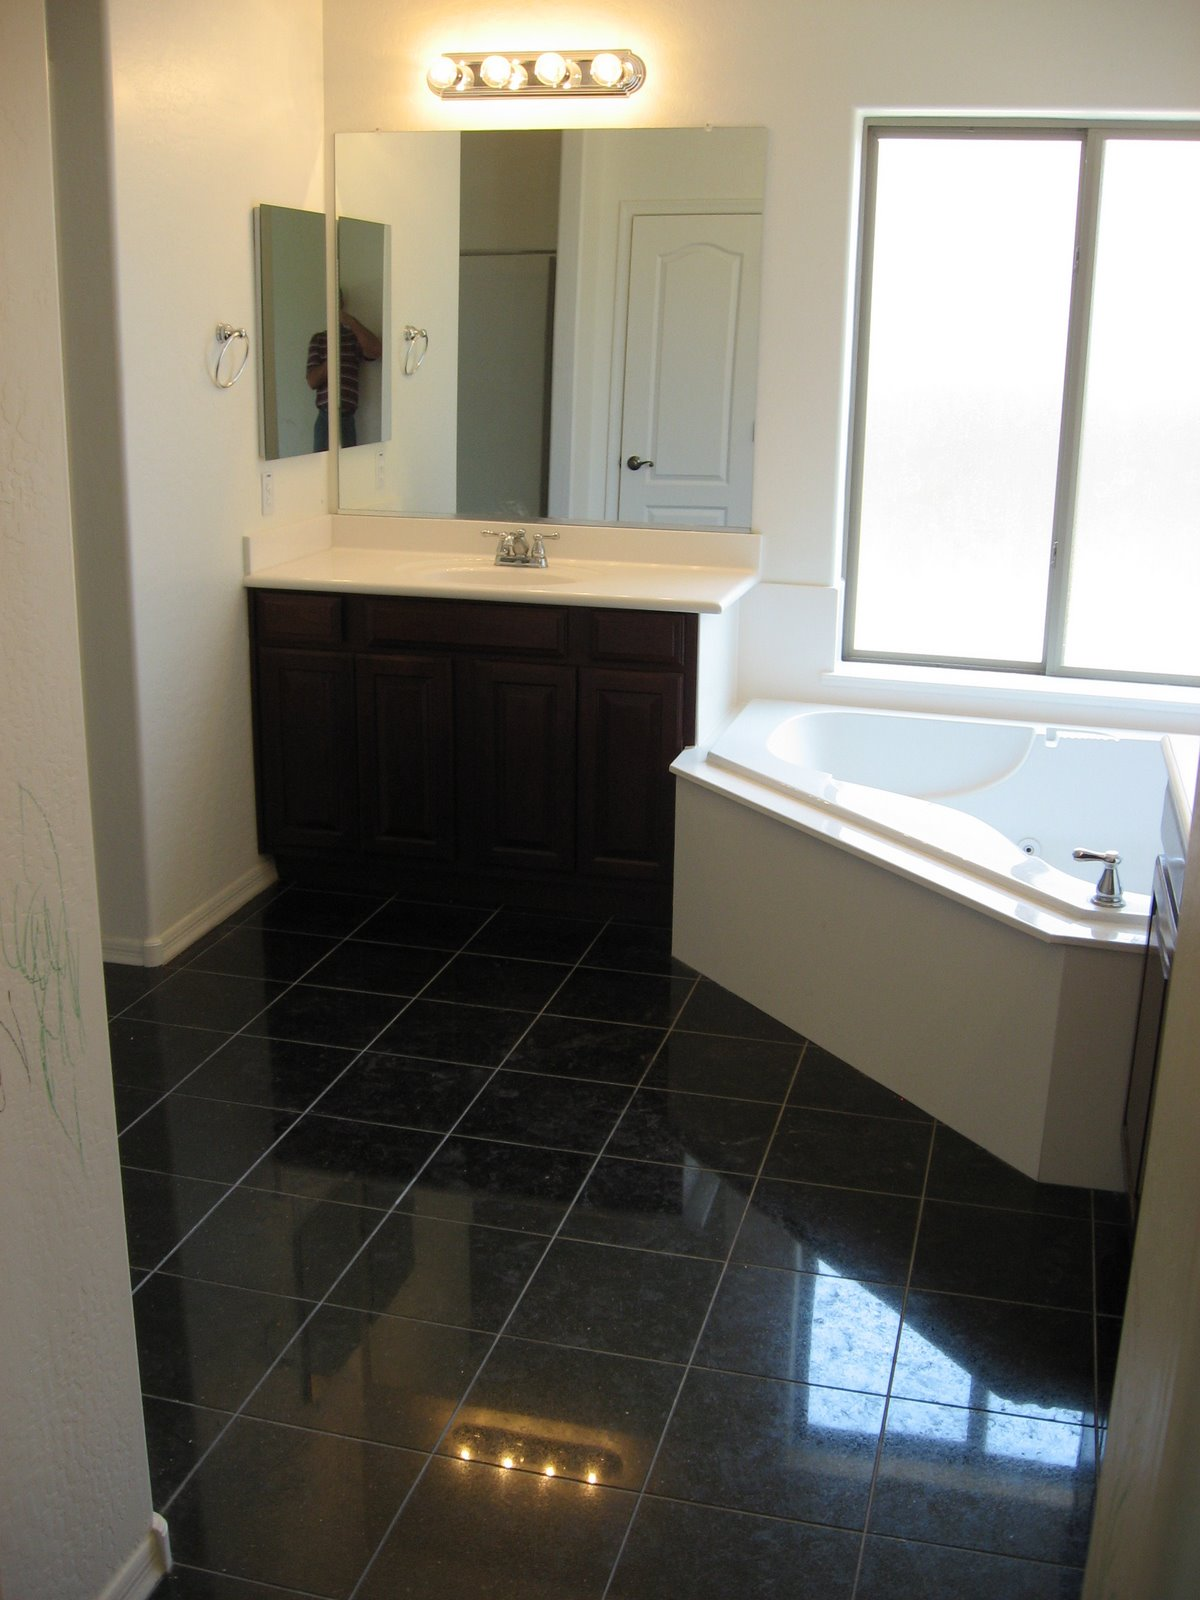 Vitrified tiles granite or marble which is a better option black granite flooring dailygadgetfo Choice Image